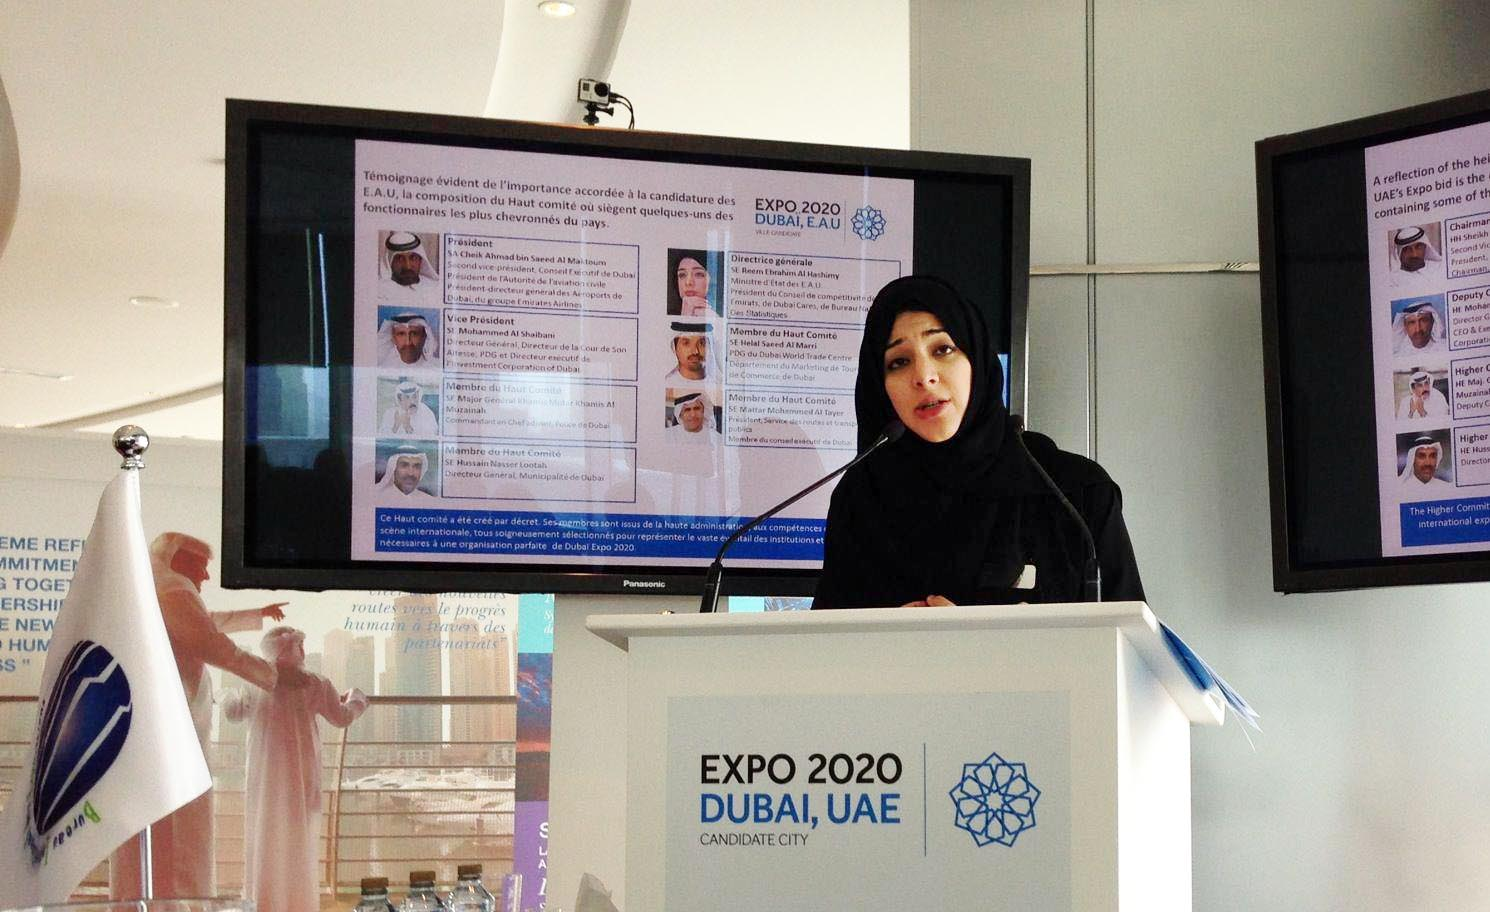 Expo 2020 Dubai, UAE: BIE Enquiry Mission to Dubai !